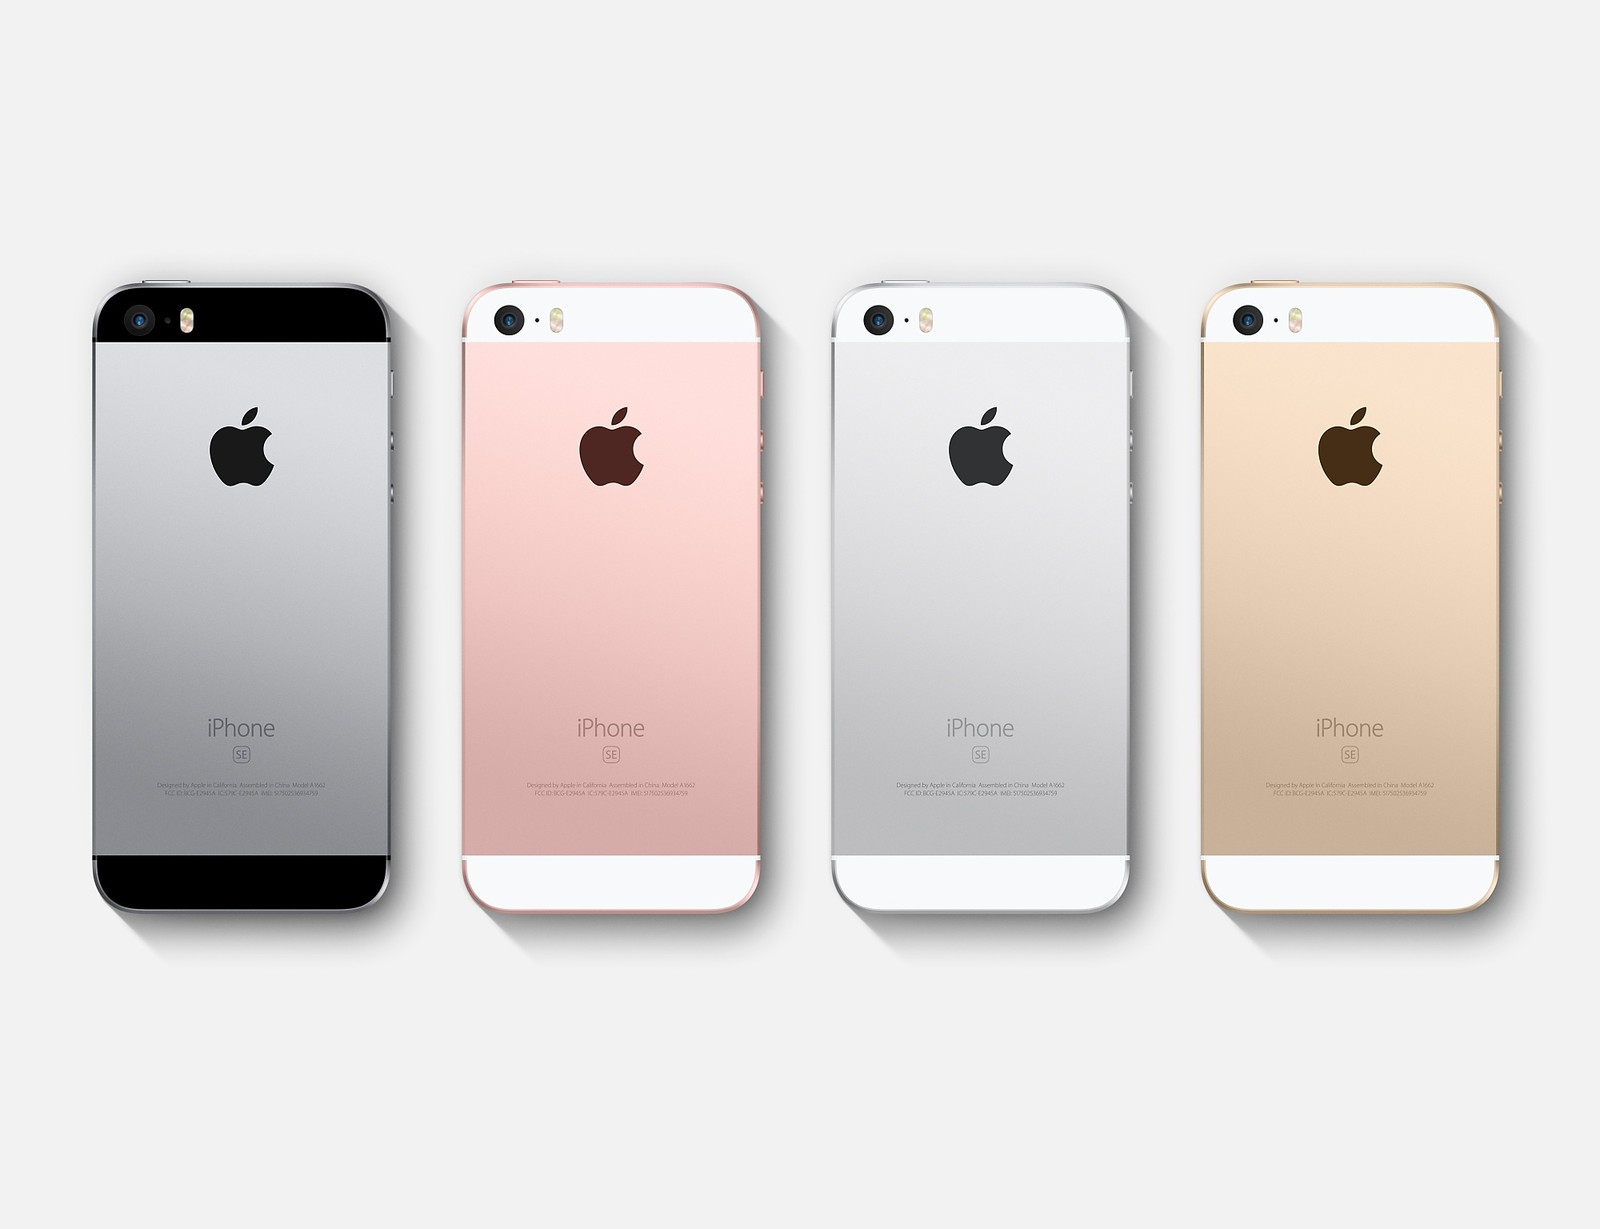 iPhone SE Price in Nepal will be approx 55K - 60K available in 4 color options: Silver, gold, space gray, and rose gold.